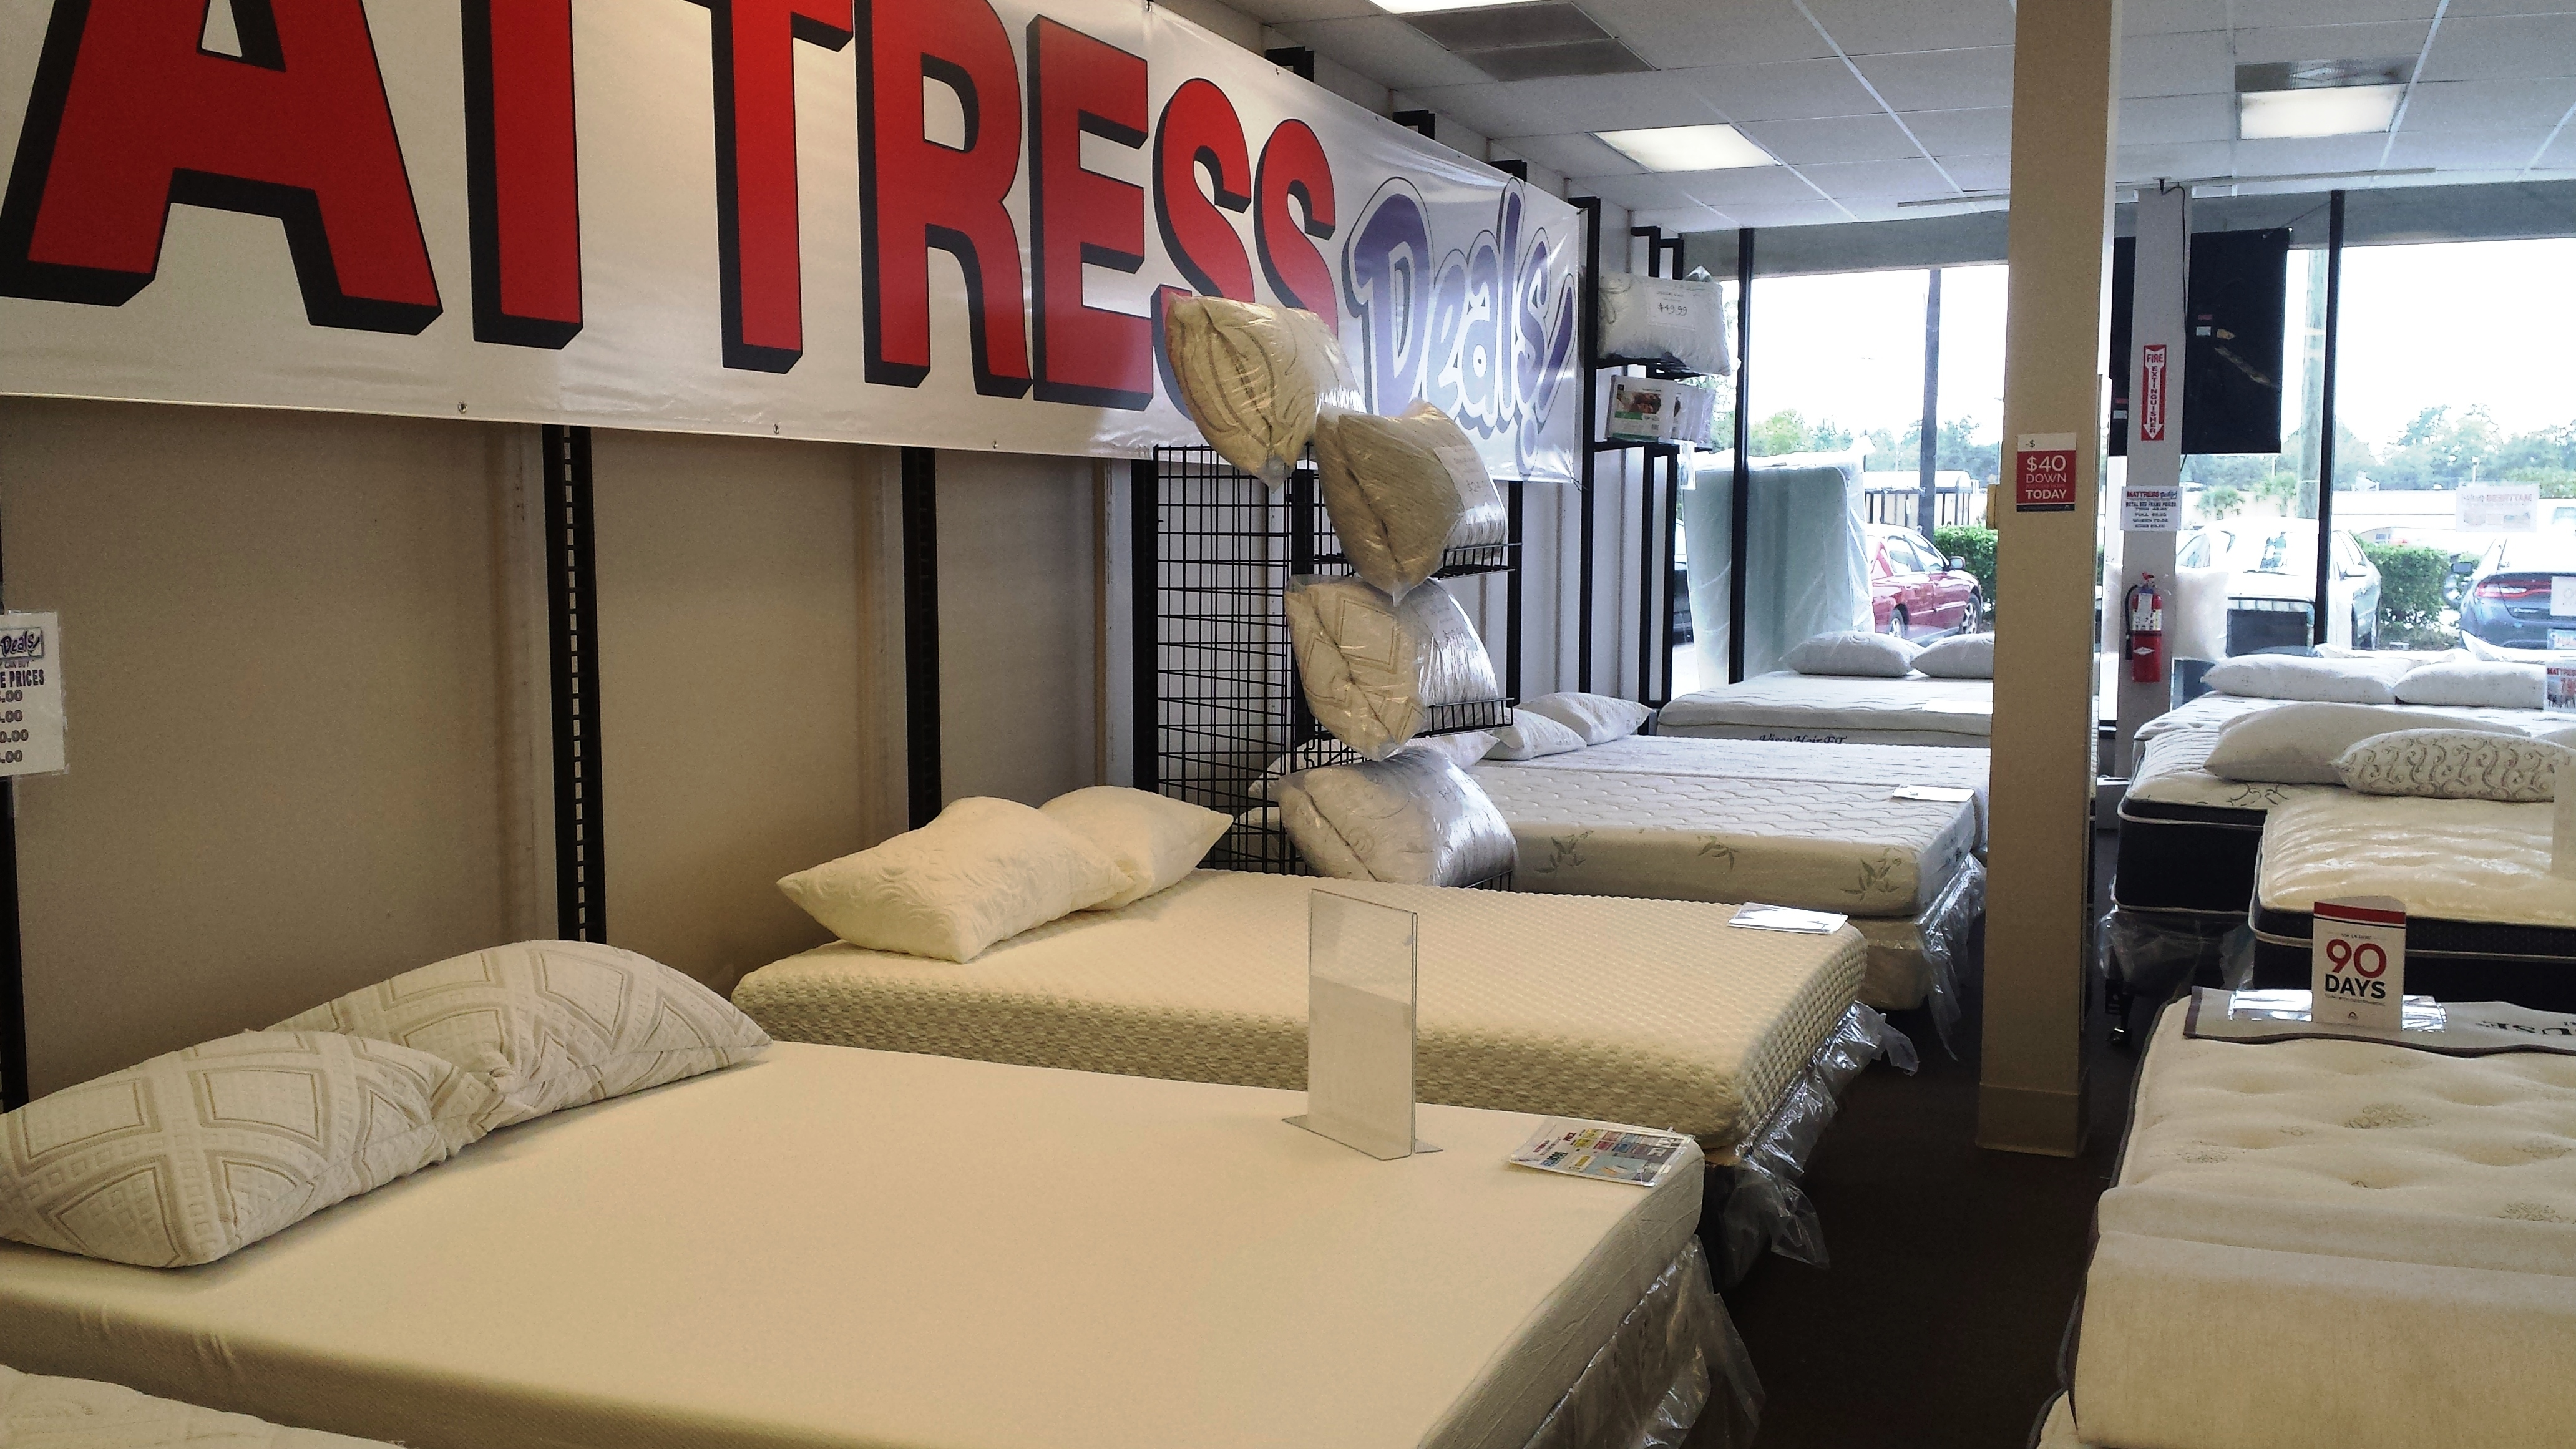 Mattress Deals image 84